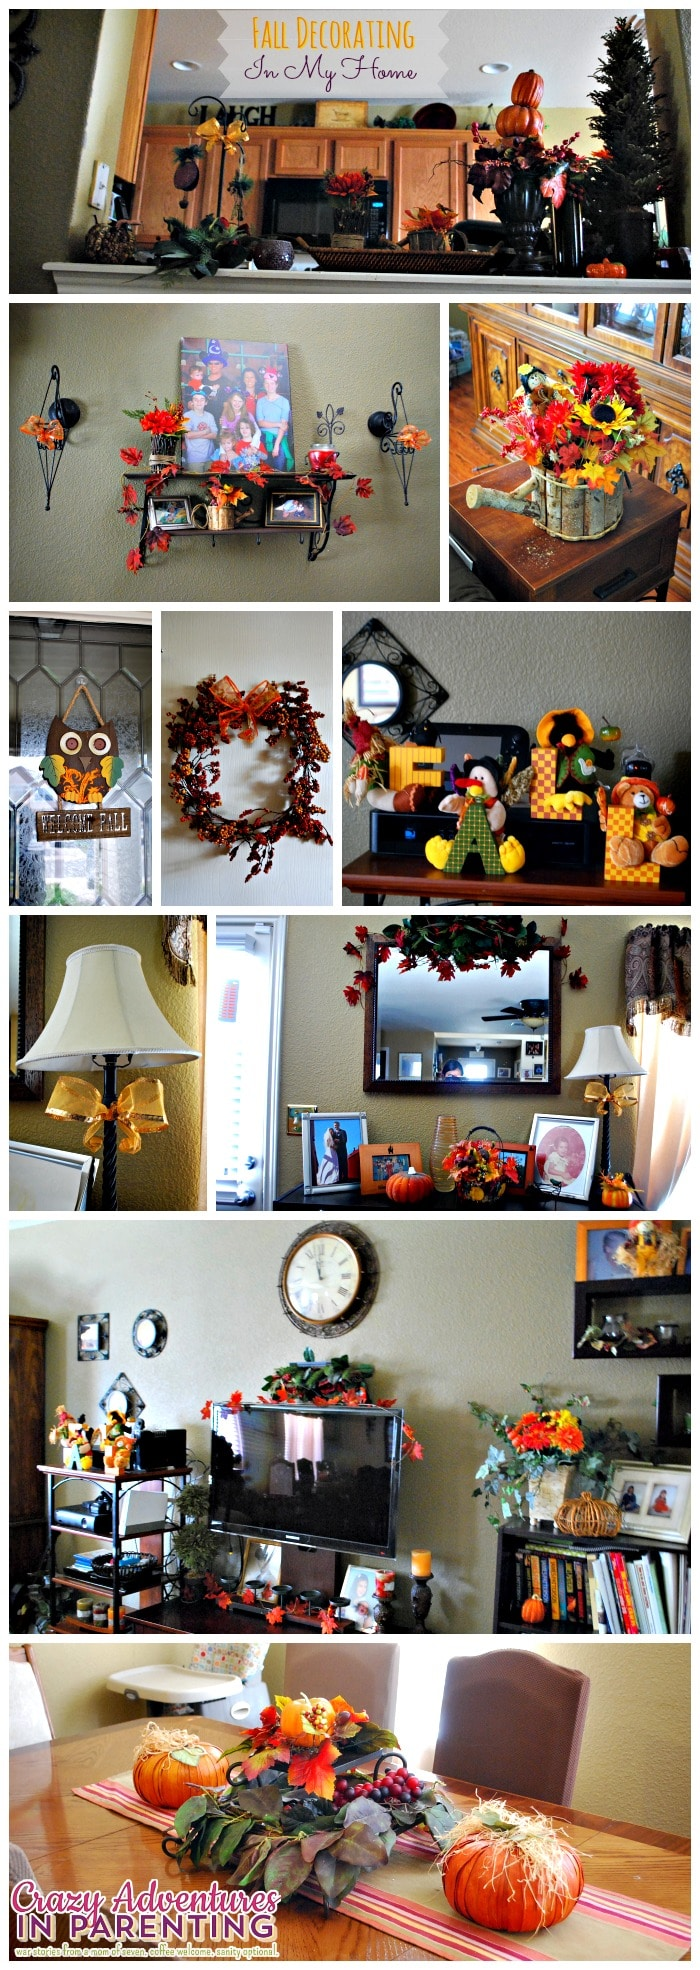 fall decorating in my home